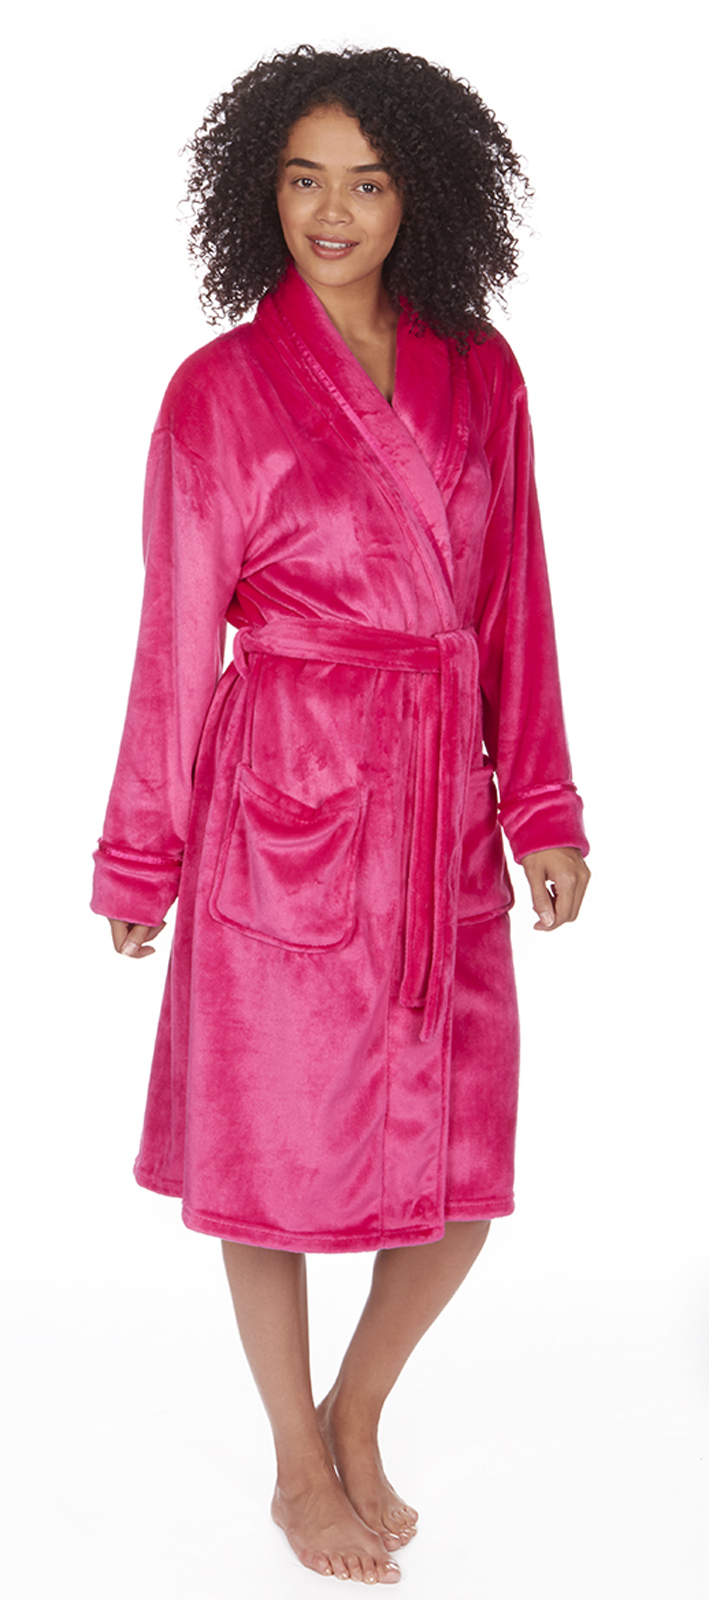 Find great deals on eBay for fleece dressing gowns. Shop with confidence. Skip to main content. eBay: Shop by category. LADIES CORAL FLEECE DRESSING GOWN WOMENS BATHROBE LOUNGE NIGHT WEAR HOUSE COAT. Brand New. $ to $ From United Kingdom. Buy It Now +$ shipping. 47+ Sold.